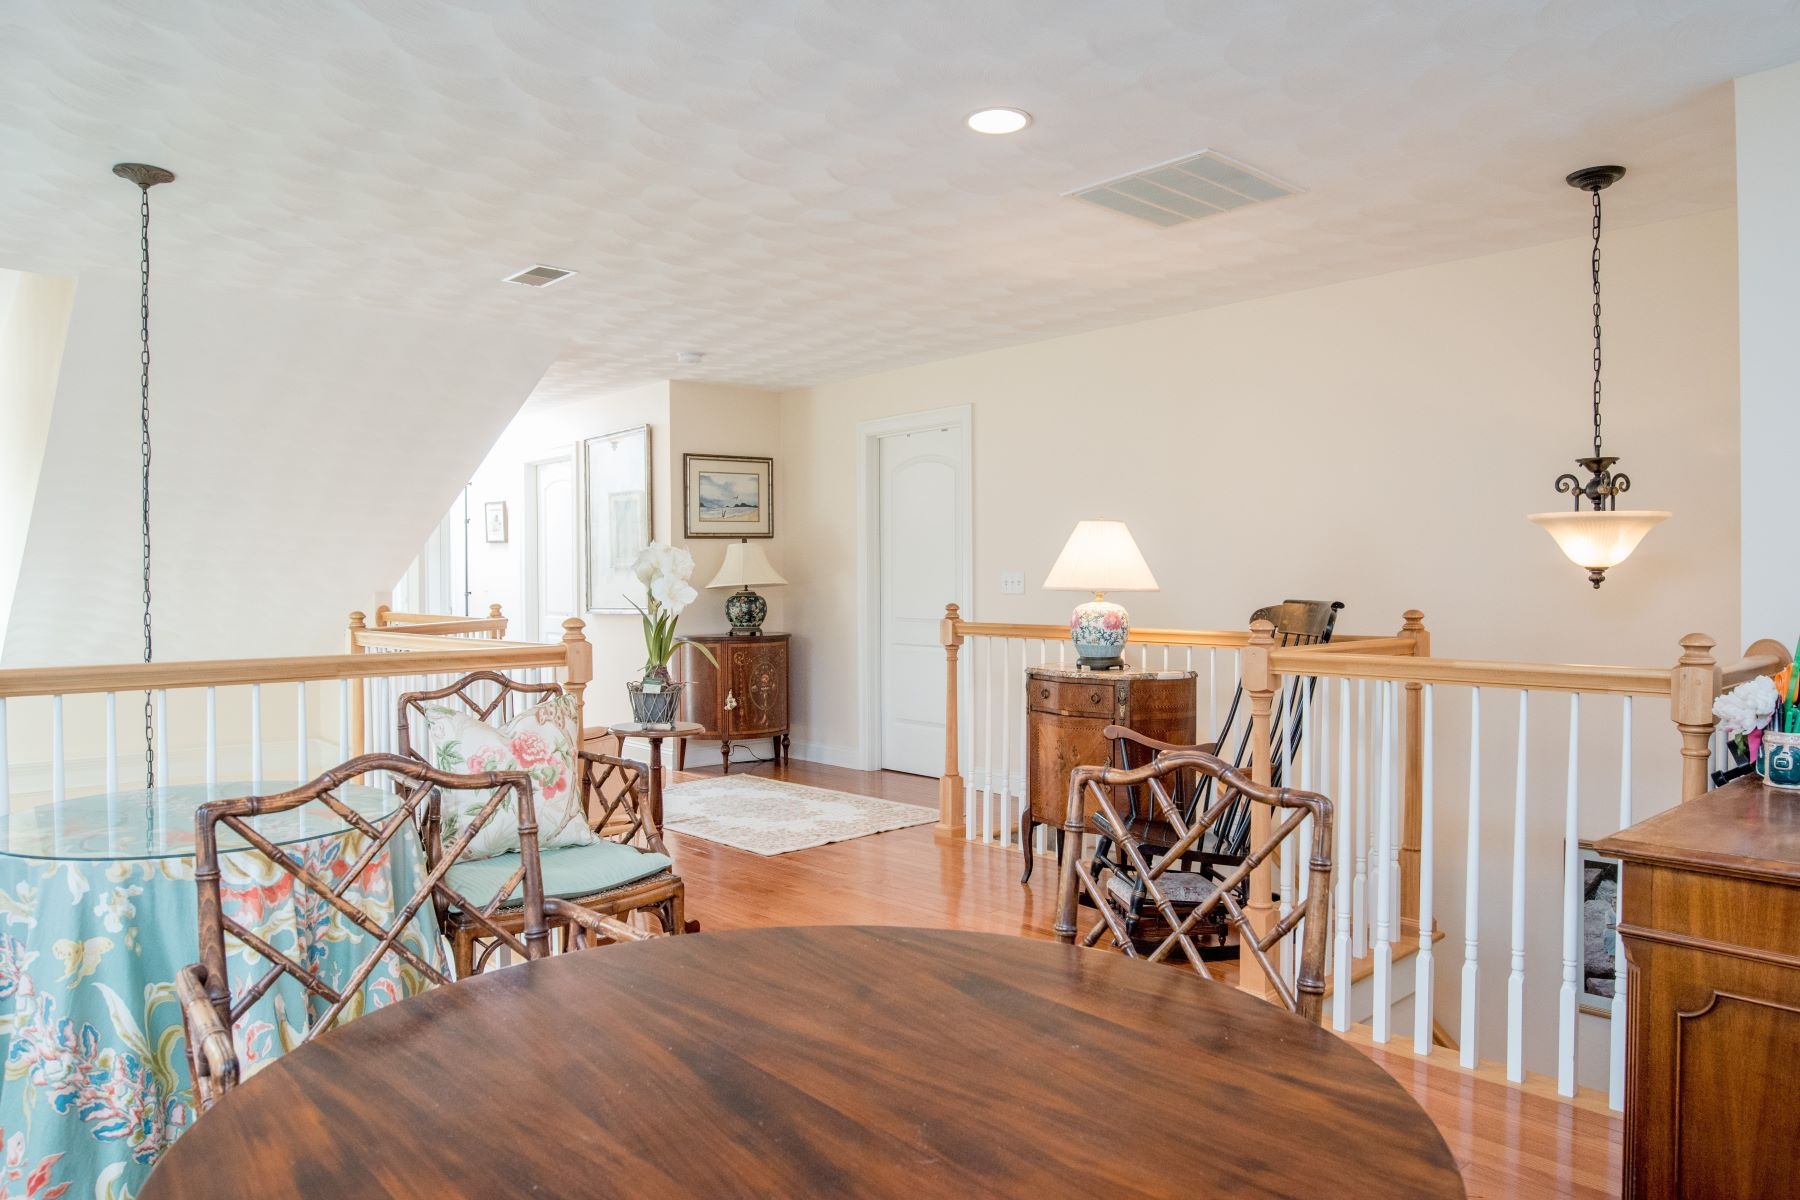 Condominium for Sale at 97 Preservation Wy, South Kingstown, RI South Kingstown, Rhode Island 02879 United States